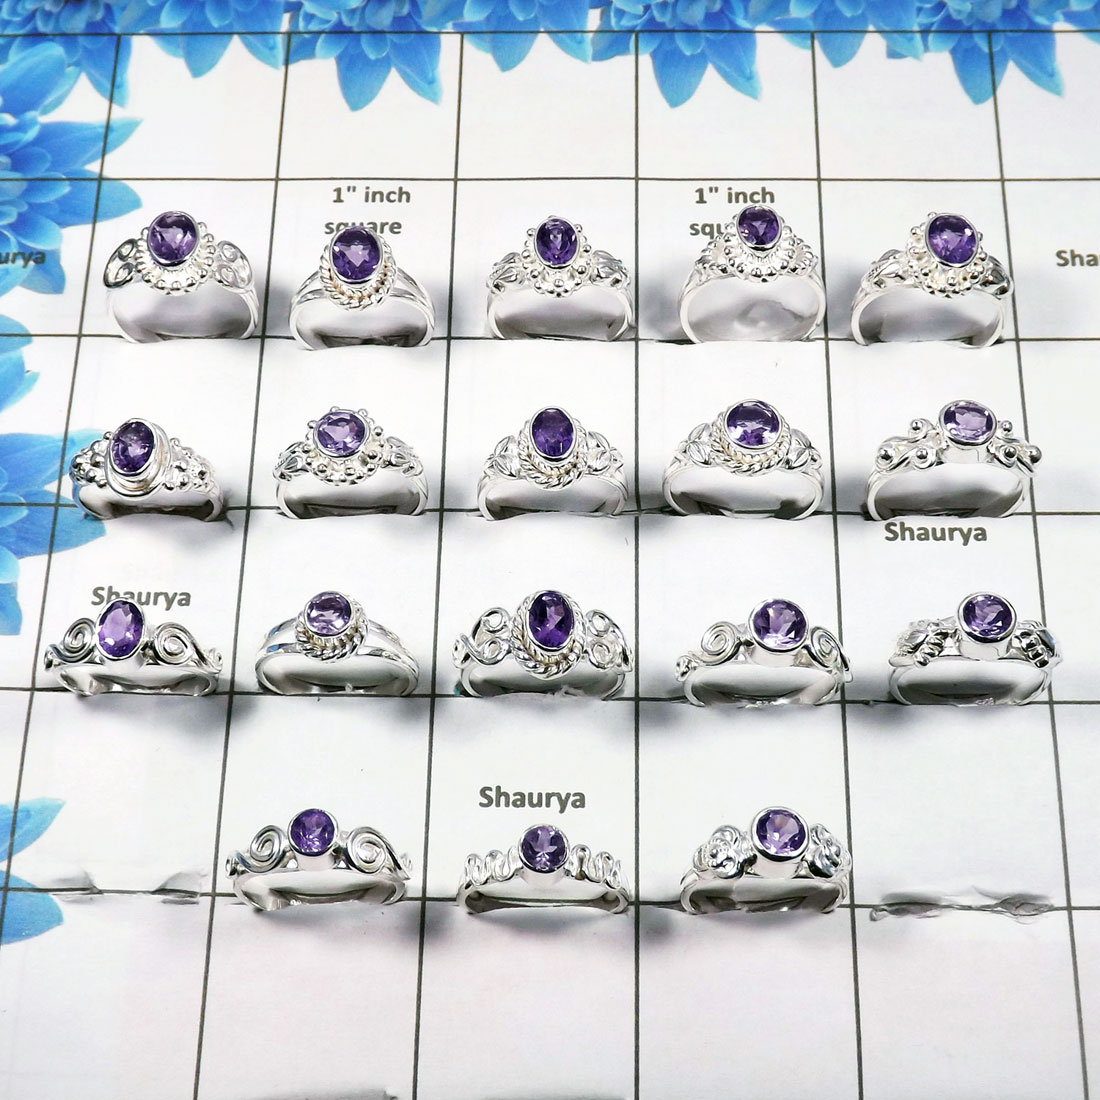 WSLR887-Cut Amethyst 925 Sterling Silver Handmade 100 Gram 30 to 33 Pcs Wholesale Ring Lot